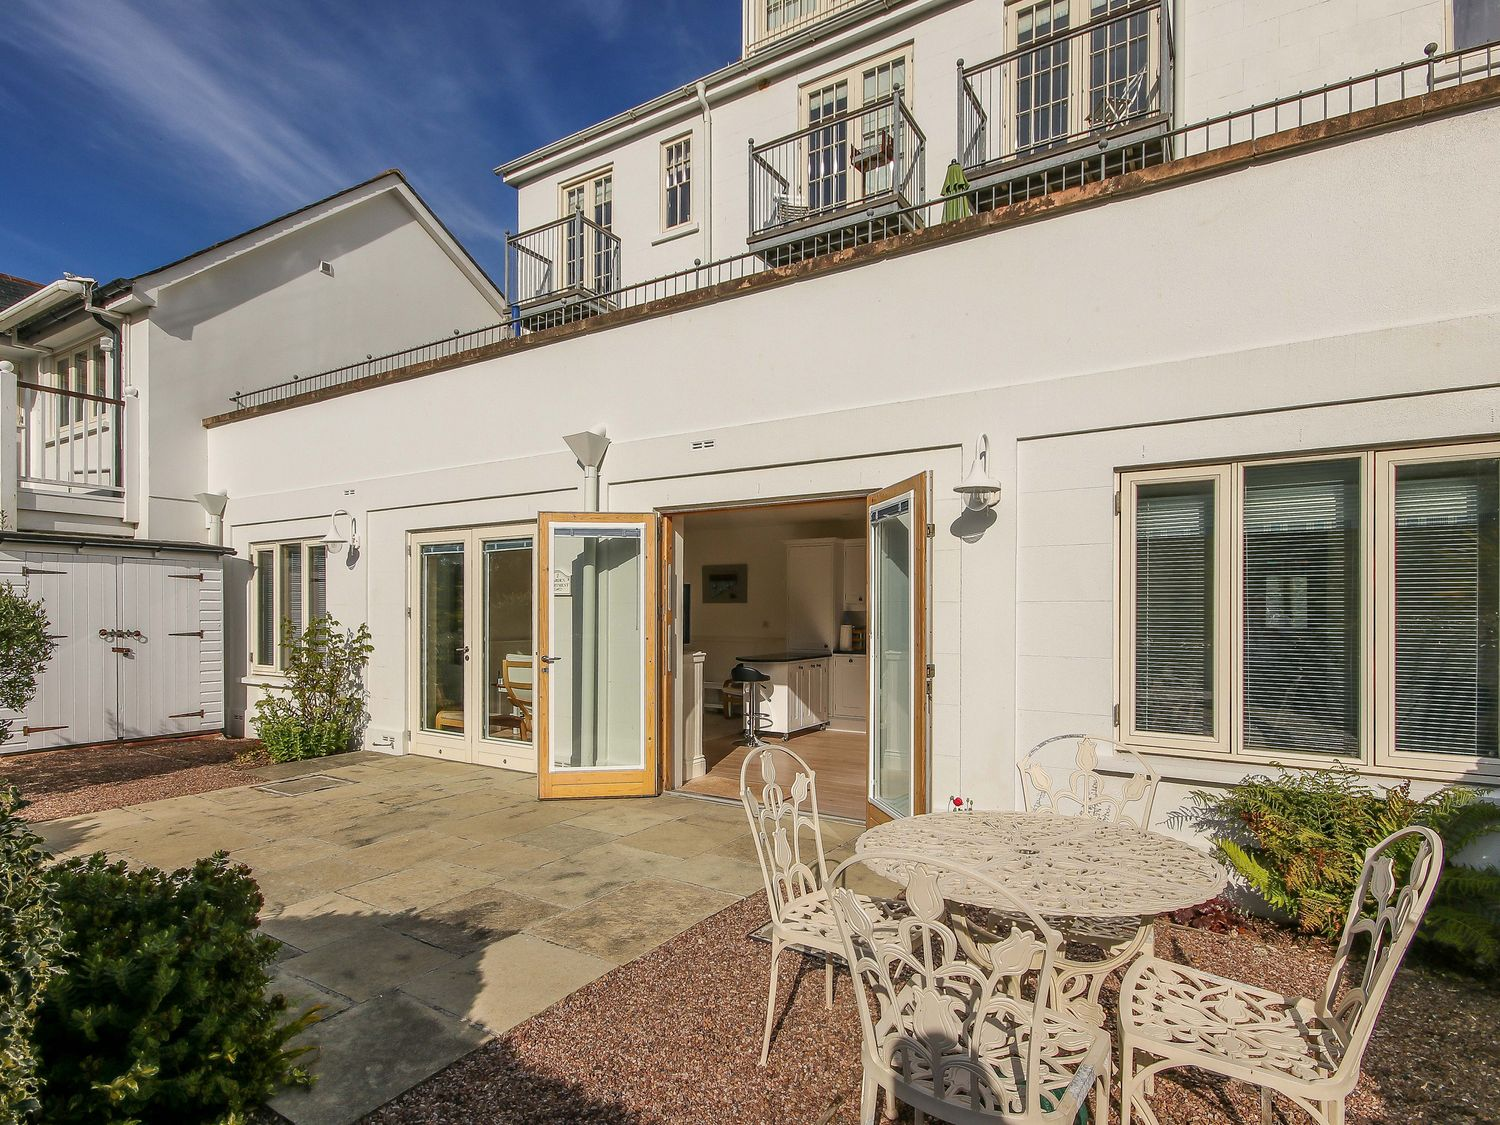 2 Garden Apartment - Devon - 1053912 - photo 1